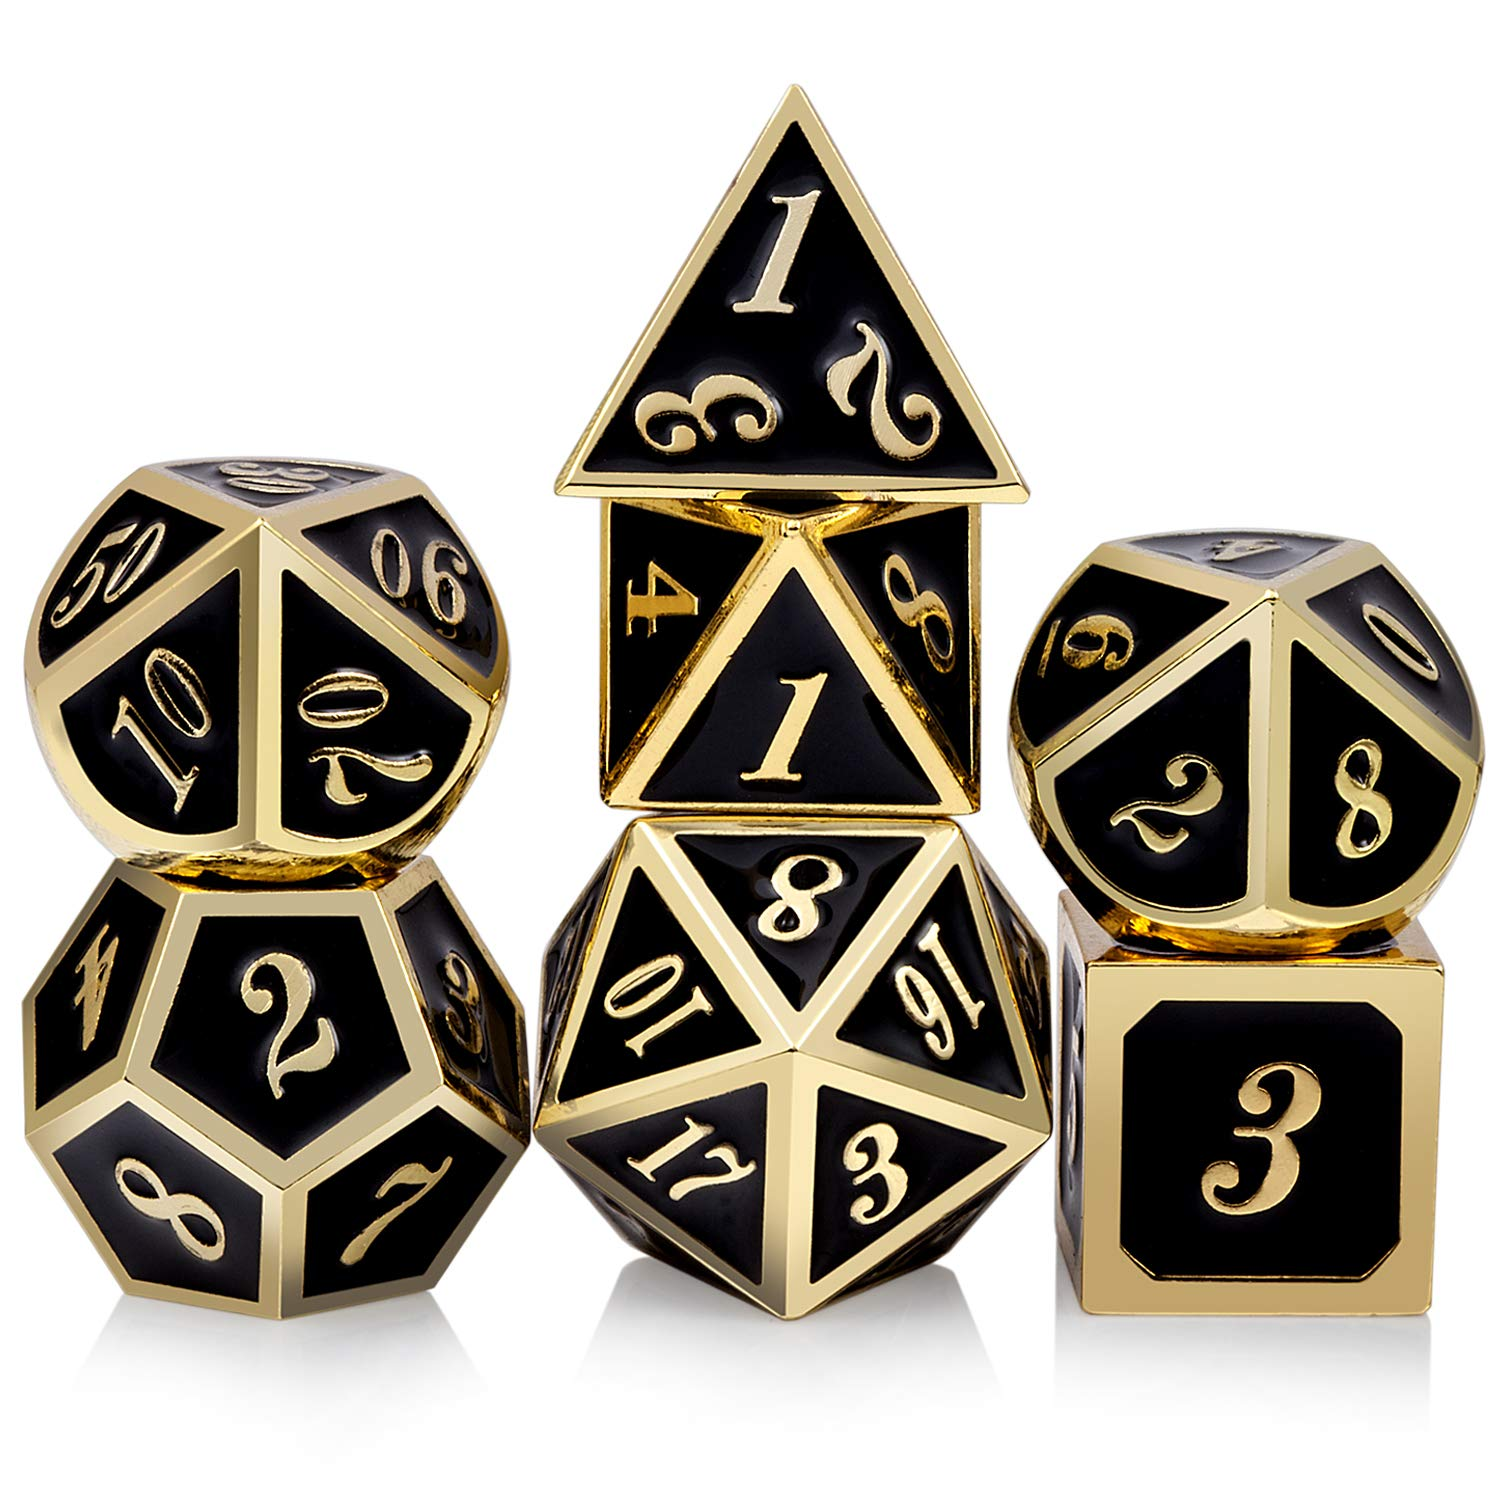 Metal Dice Set DND, 7 die Metal Polyhedral Dice Set with Metal Box Black Color and Gold Number for Role Playing Game Dungeons and Dragons D&D Pathfinder Shadowrun and Math Teaching by DNDND